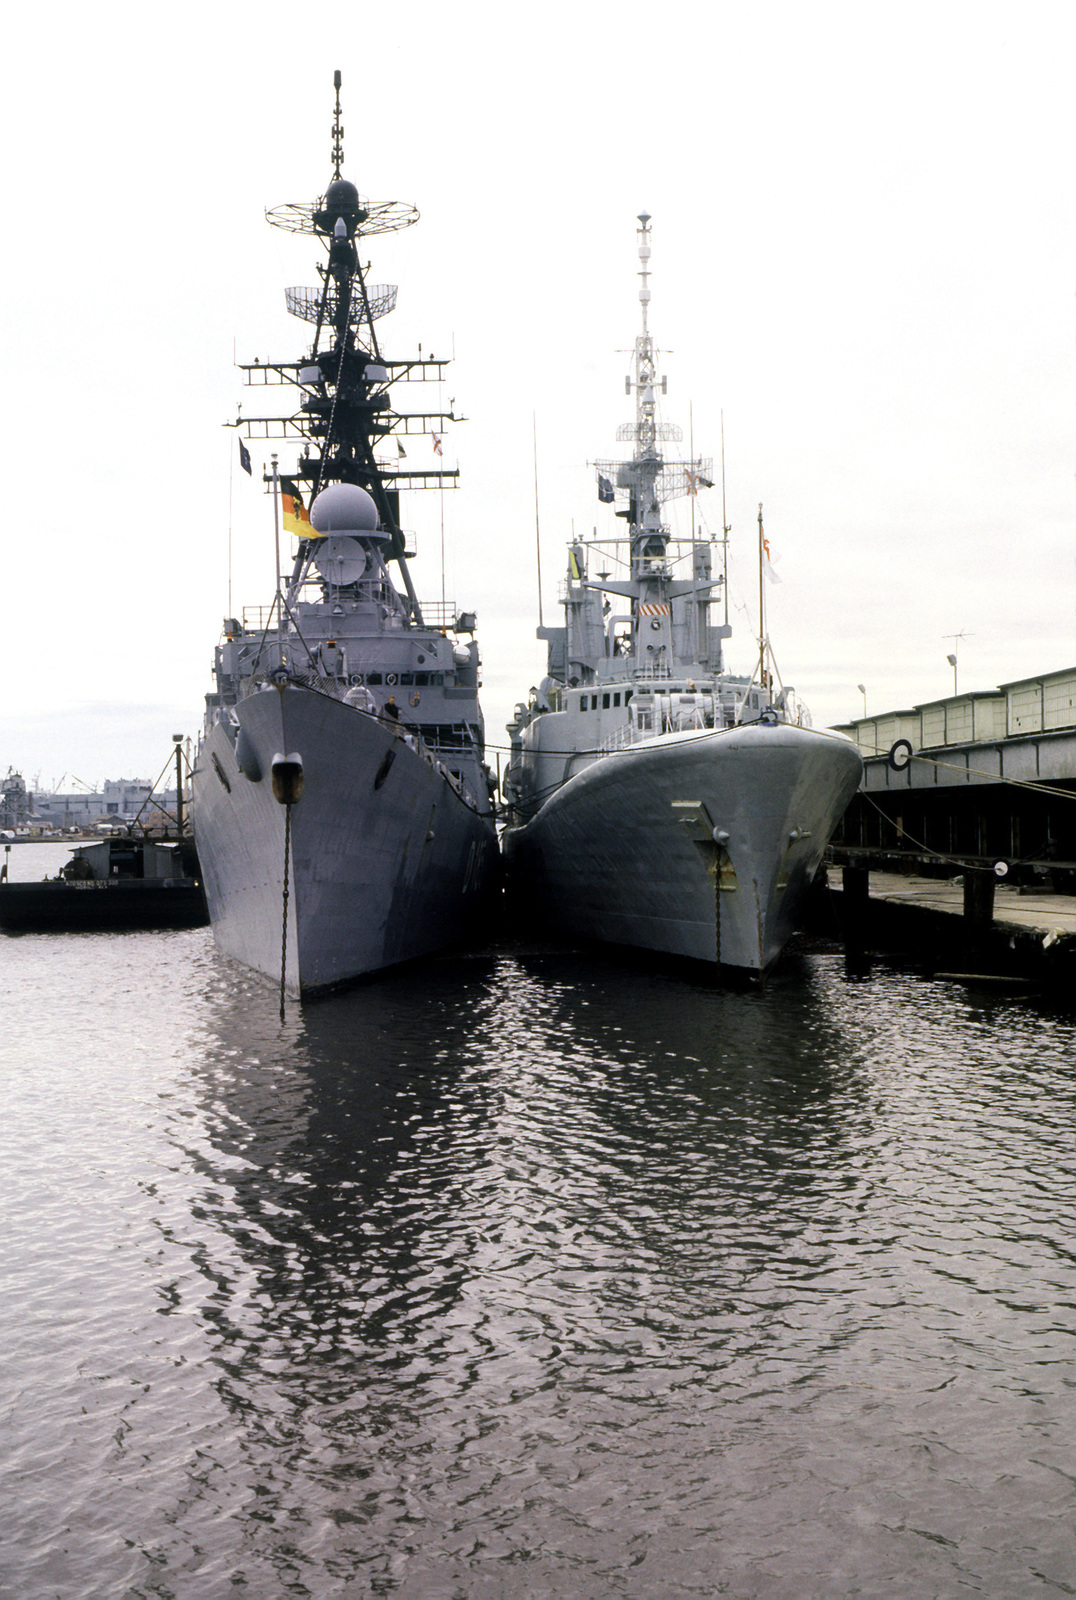 The West German destroyer FGS LUTJENS (D-185), left, and the Canadian frigate HMCS MARGAREE (DDH-230) lie tied up together in port